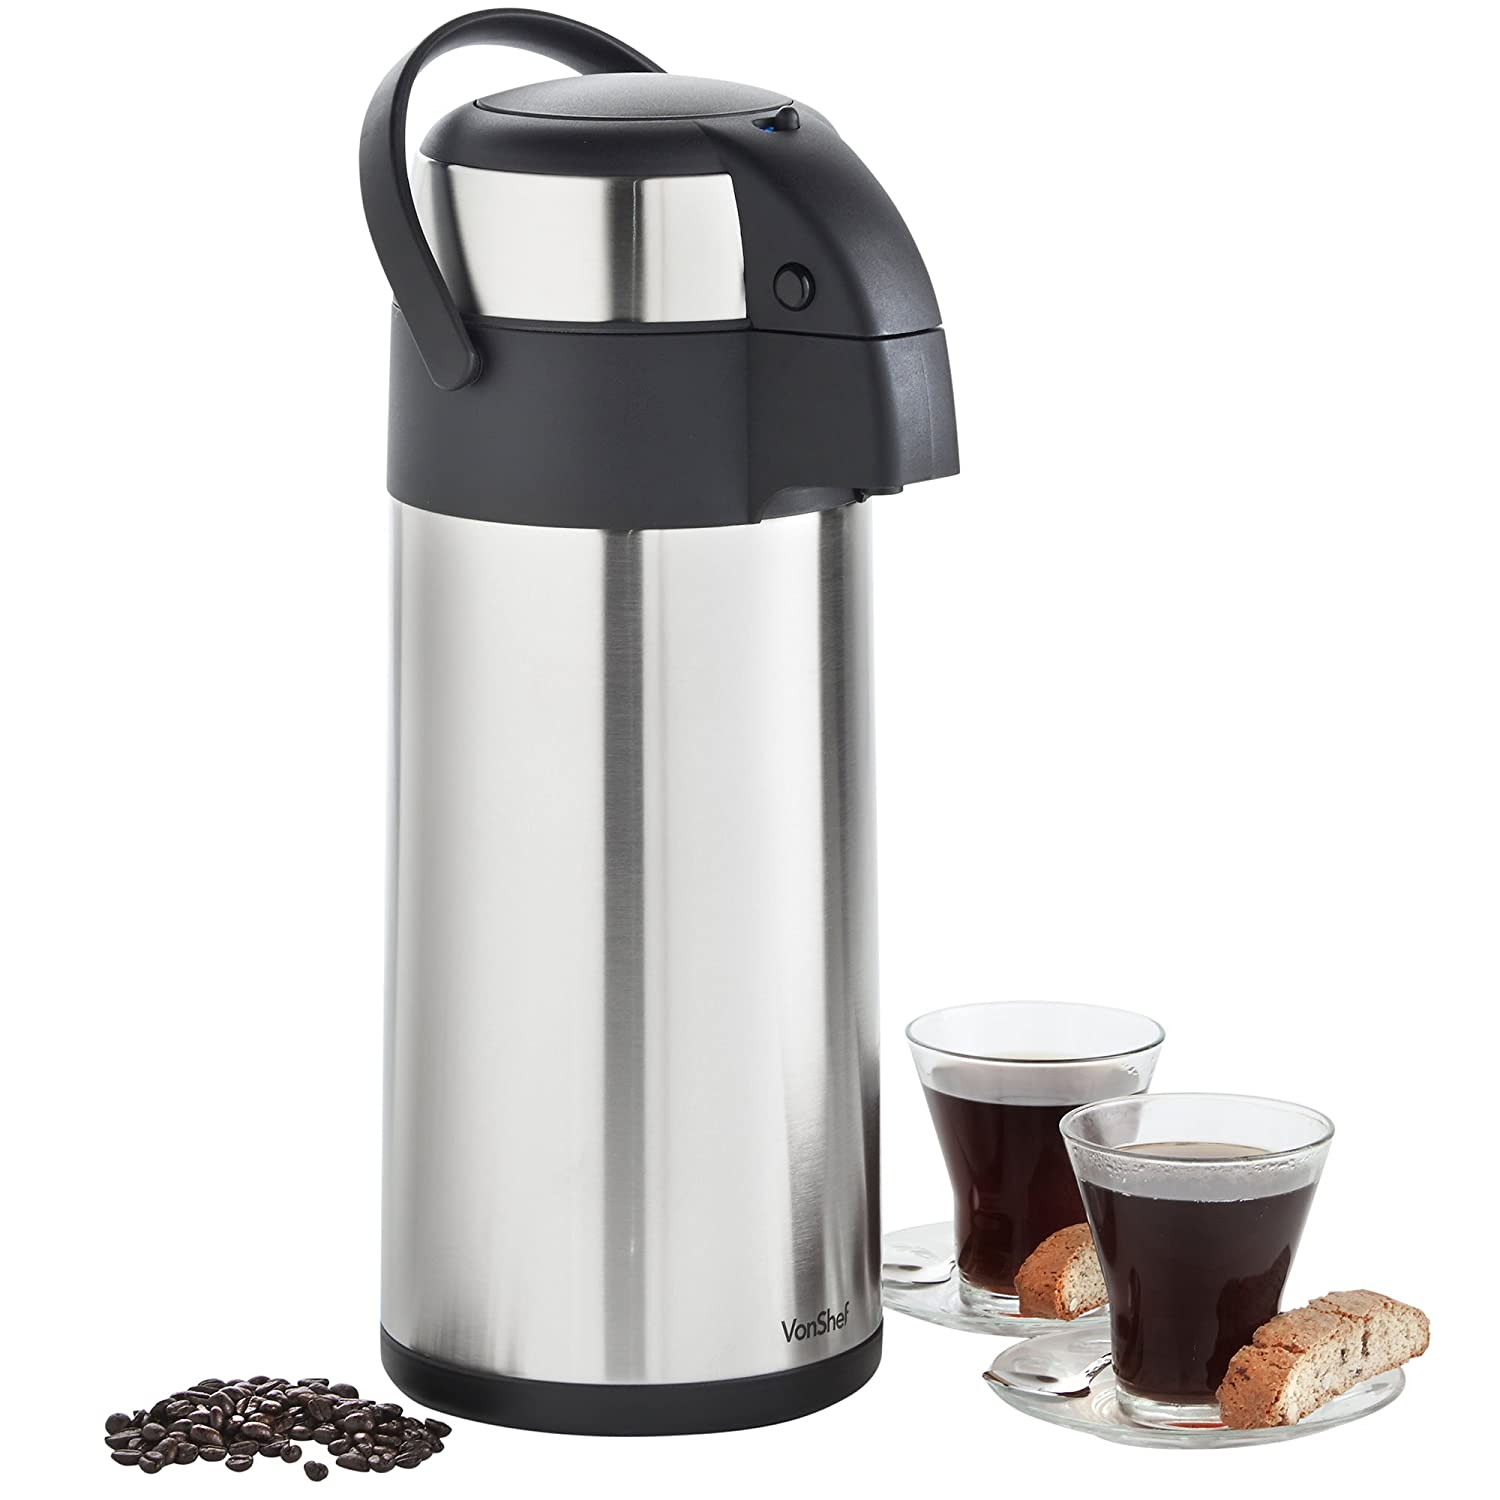 VonShef 5L Thermal Airpot Carafe Coffee Beverage Dispenser | Stainless Steel Large Air Pot 170 fl oz Capacity | Perfect for Hot or Cold Liquids